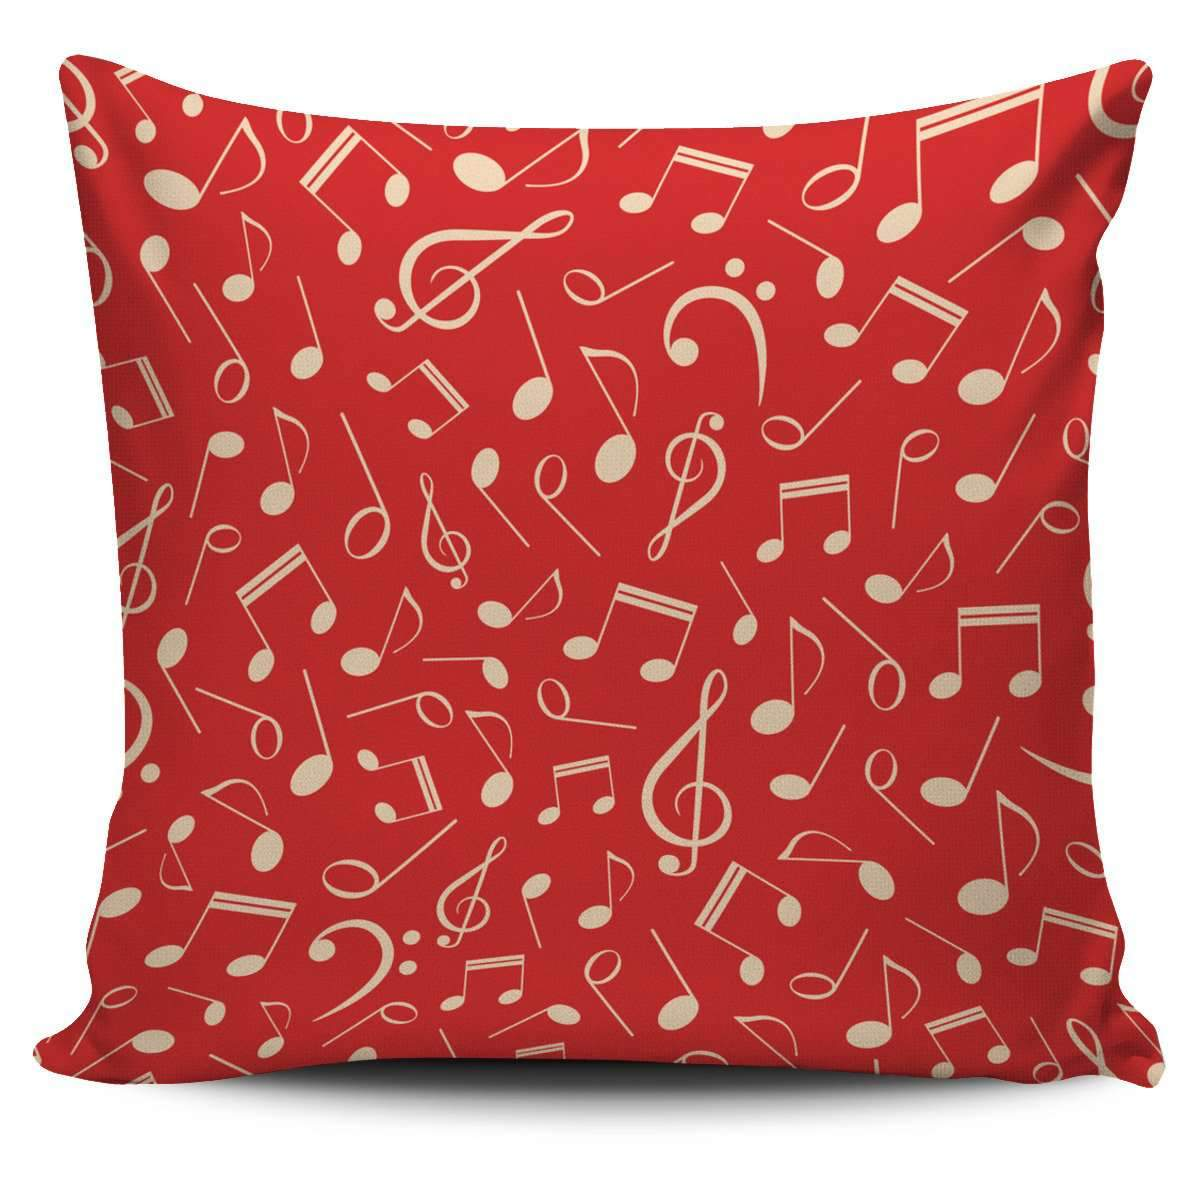 Red Music Notes Pillow Cover Umisfashion Store